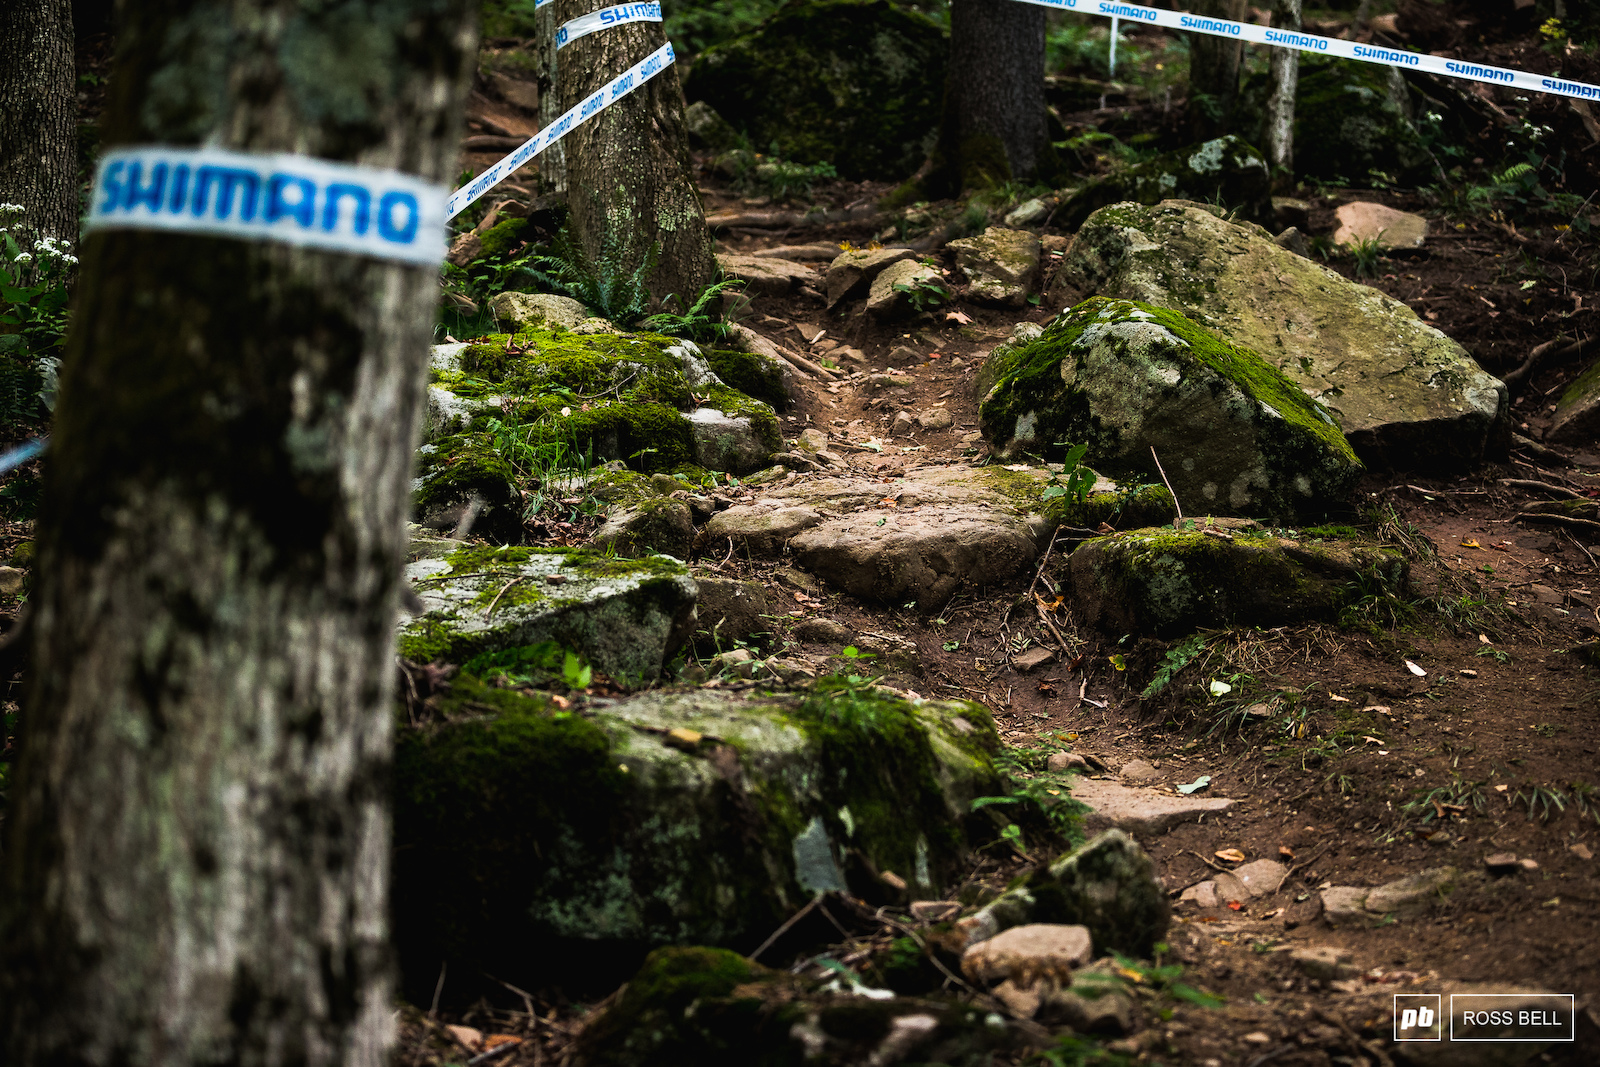 There s plenty of line choice for riders to scope out tomorrow and get up to speed on.